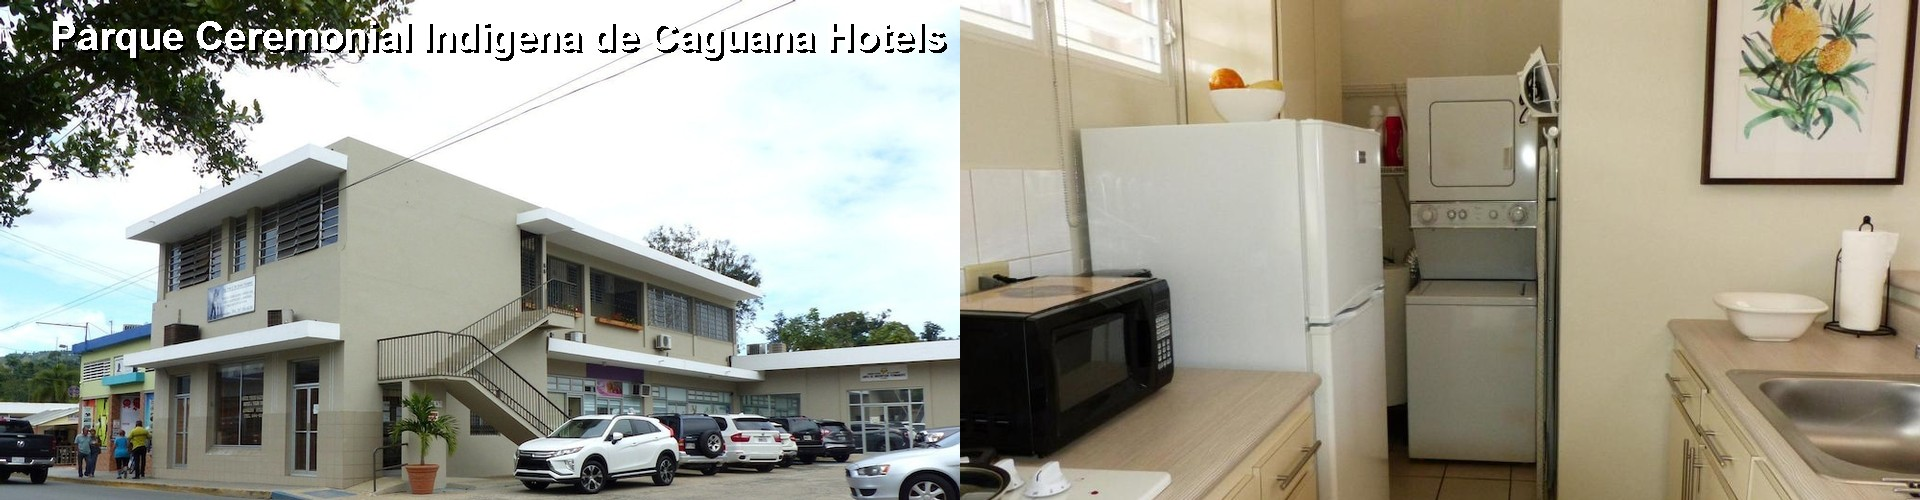 5 Best Hotels near Parque Ceremonial Indigena de Caguana